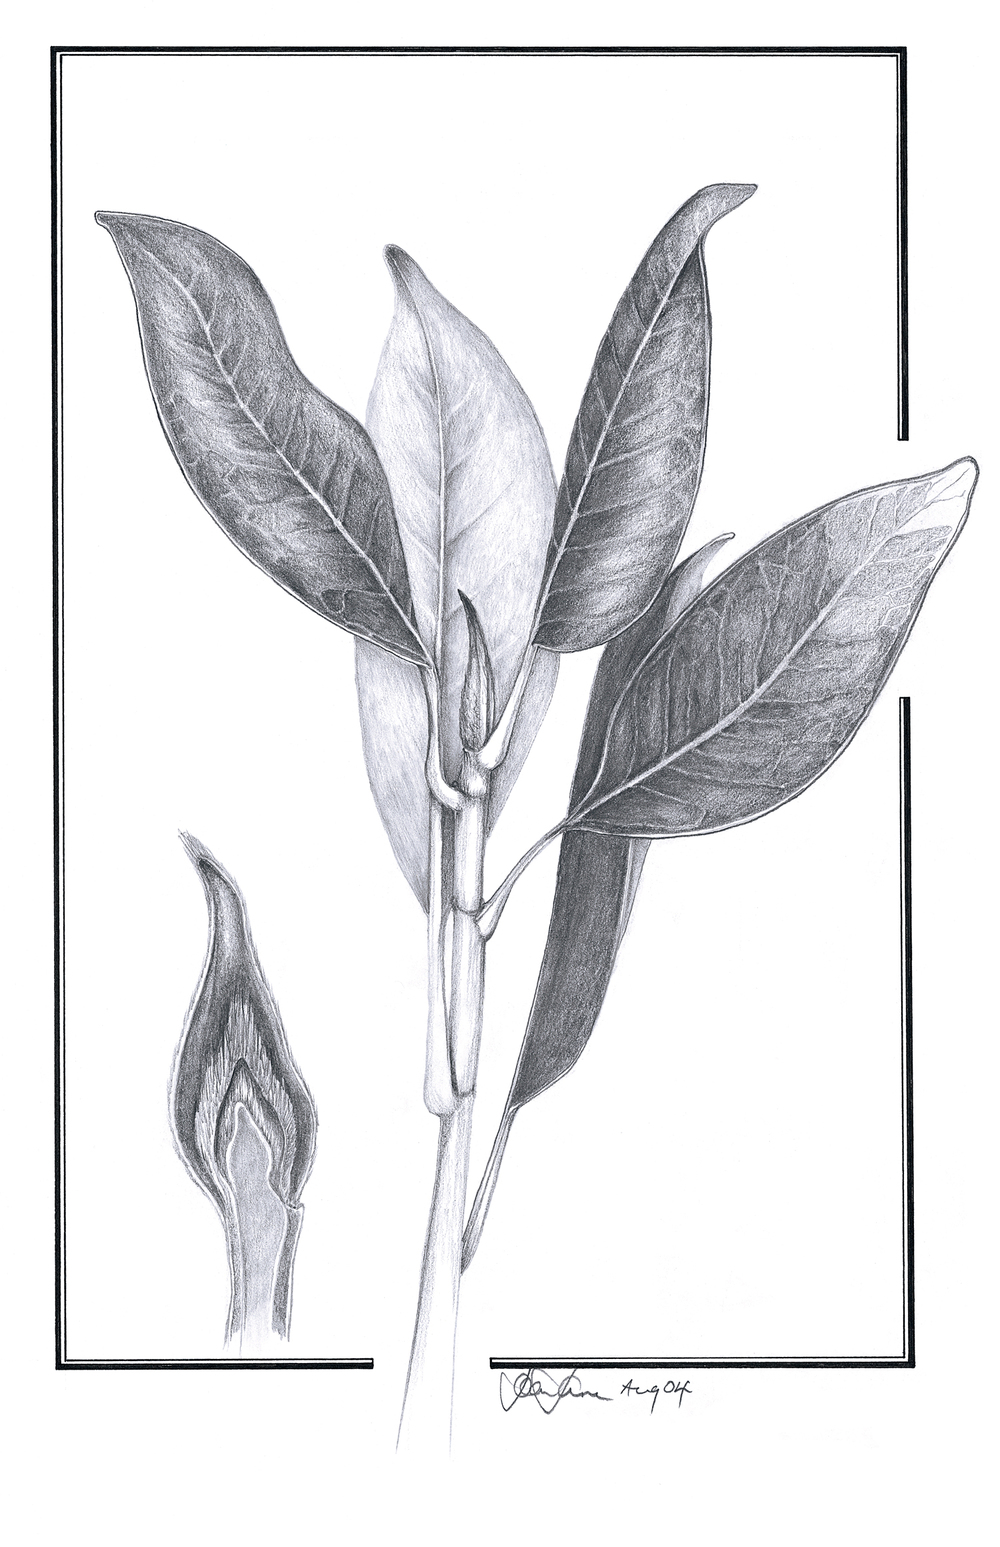 grandiflora leaves.jpg